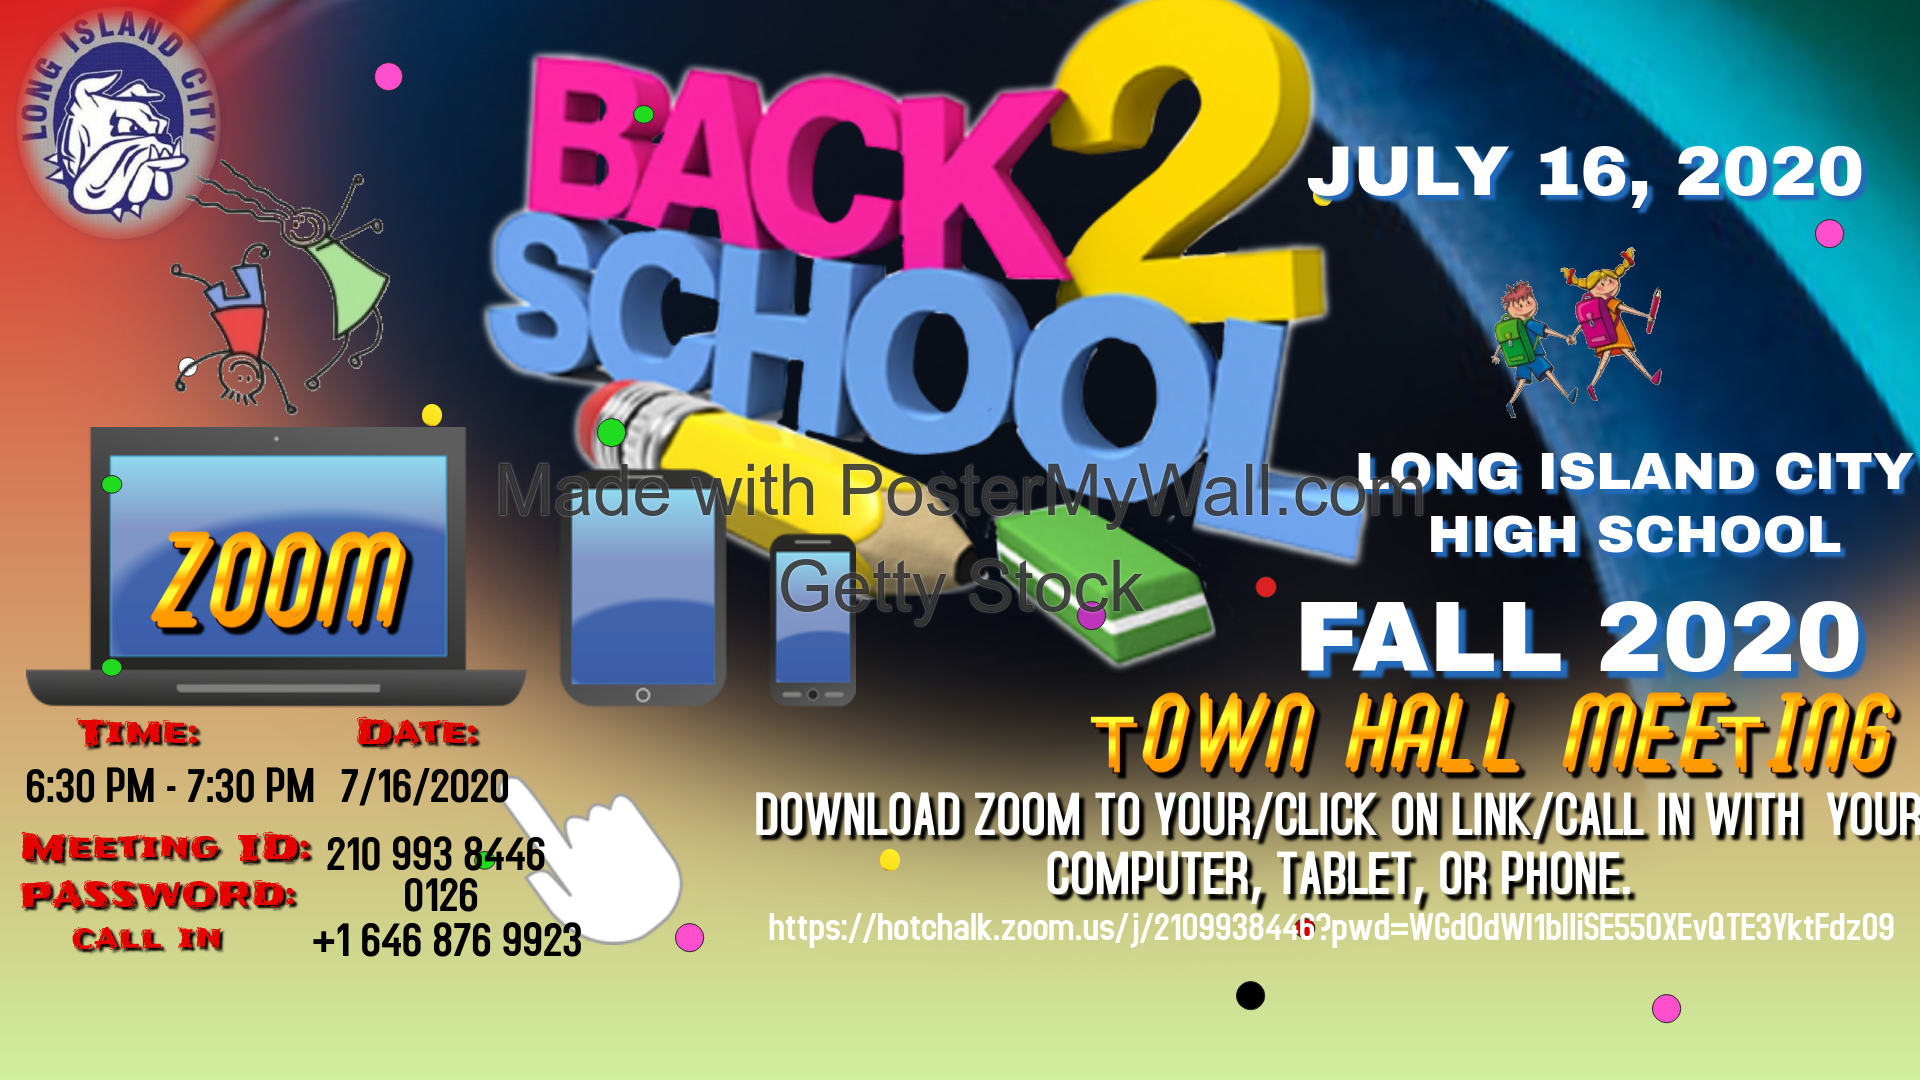 Back2School Town Hall Meeting flyer on July 16, 2020